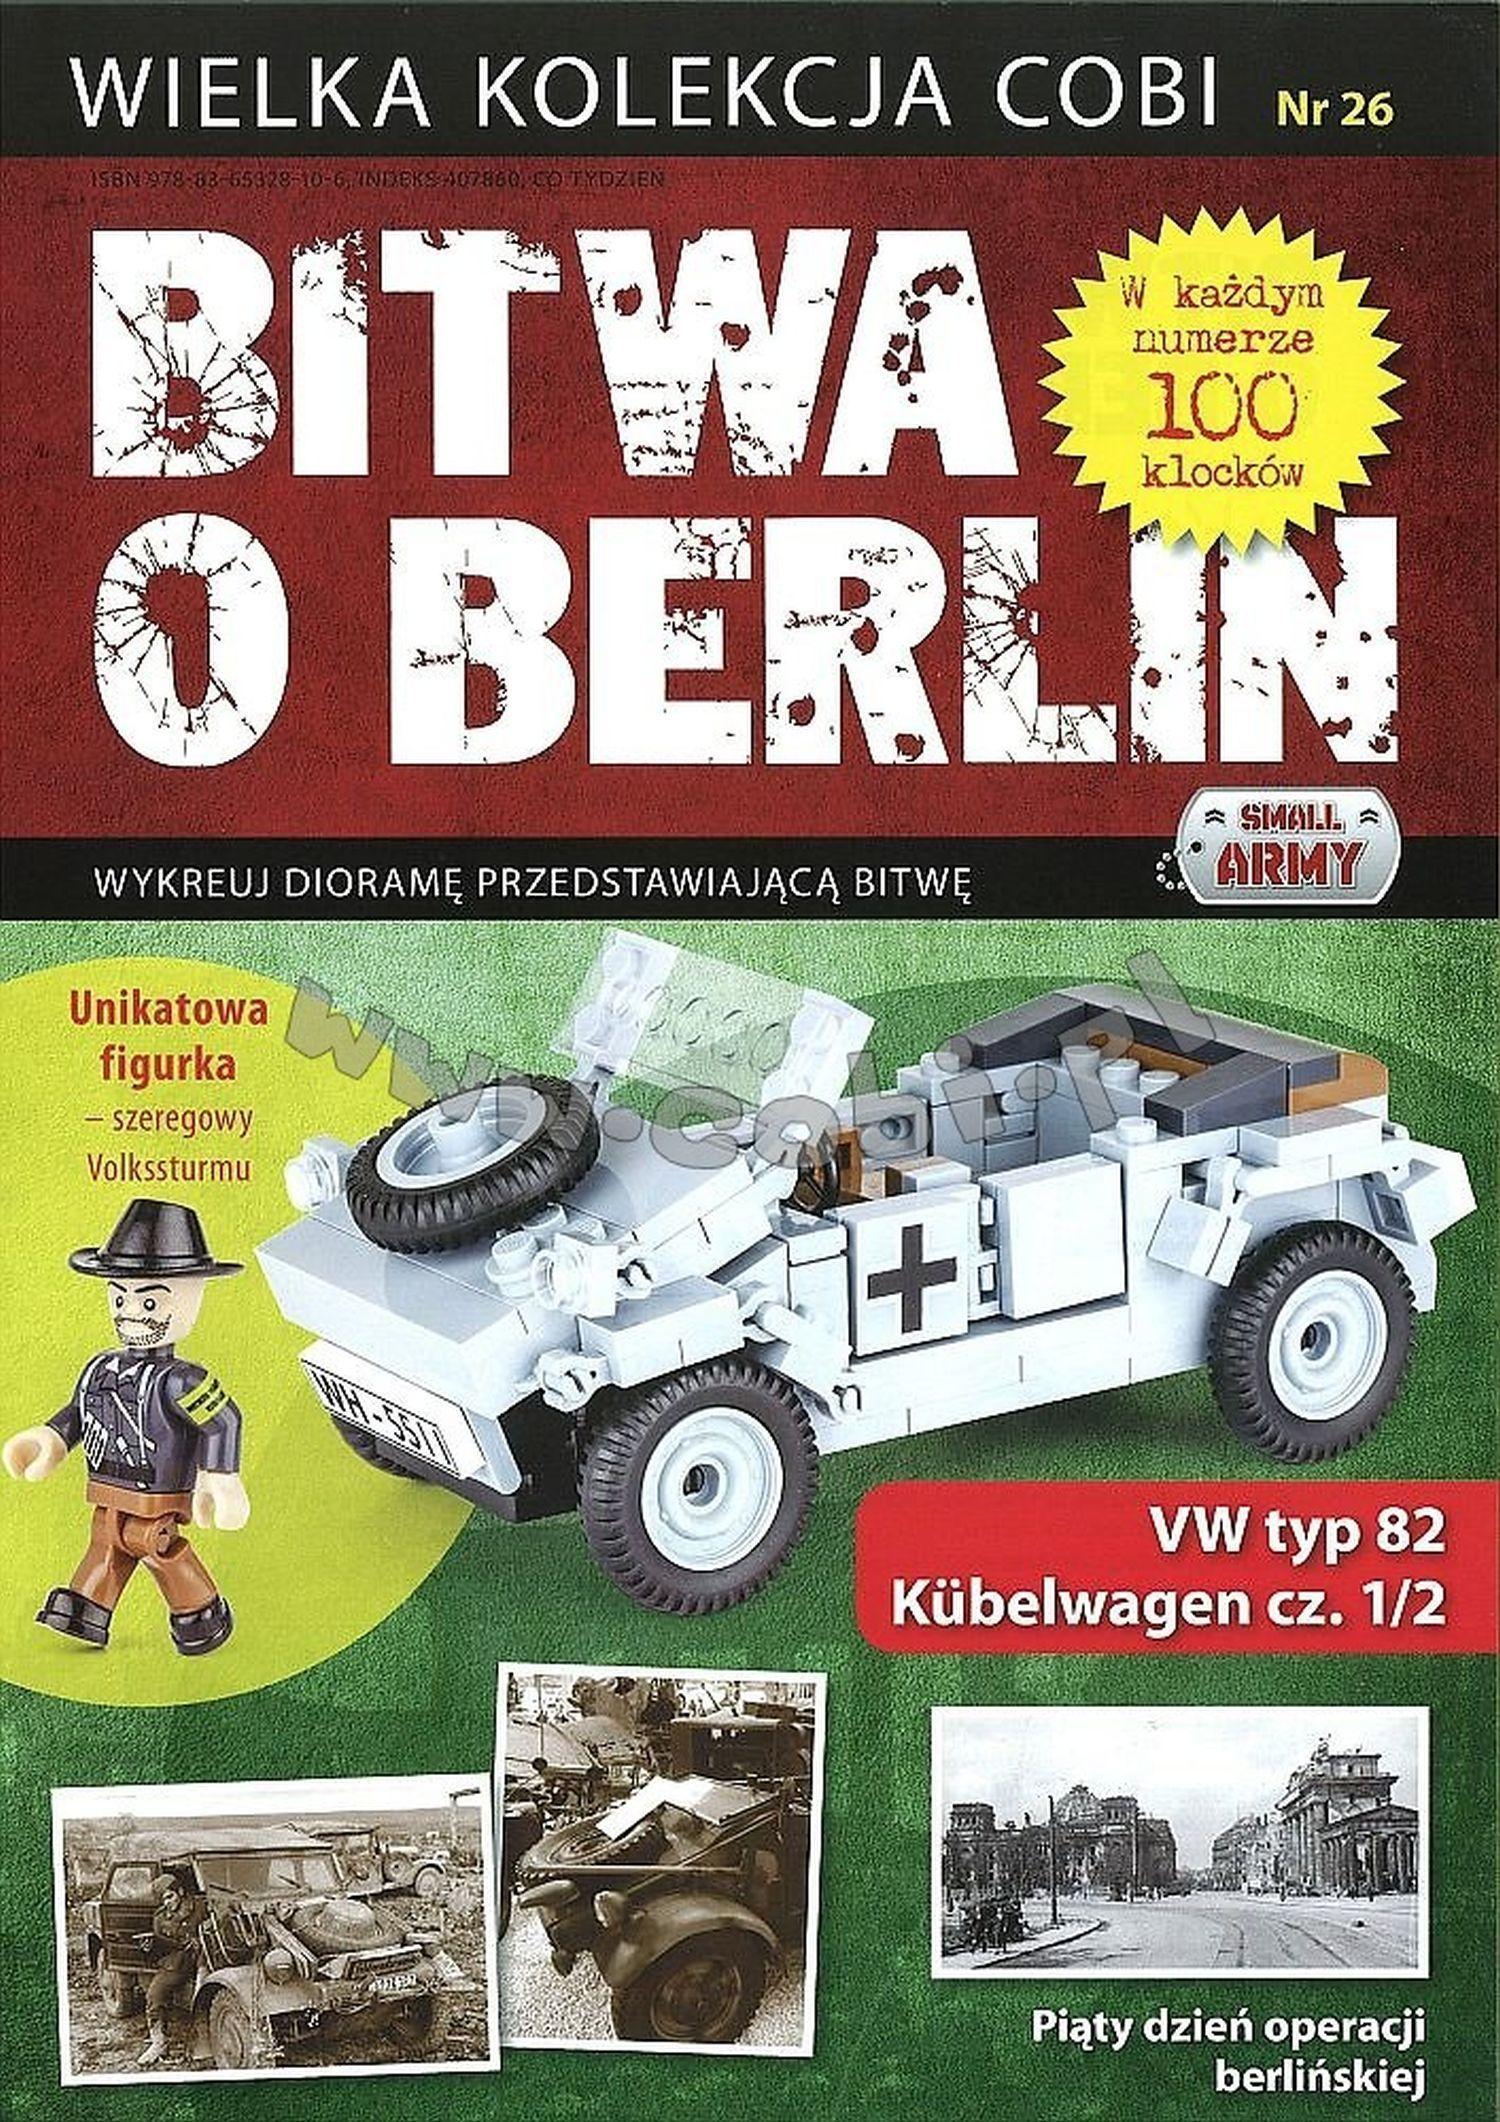 555526_Cobi_2.WK_Sammelheft_26,27_Kuebelwagen_www-super-bricks.de_1_Cobi_2.WK_www-super-bricks.de